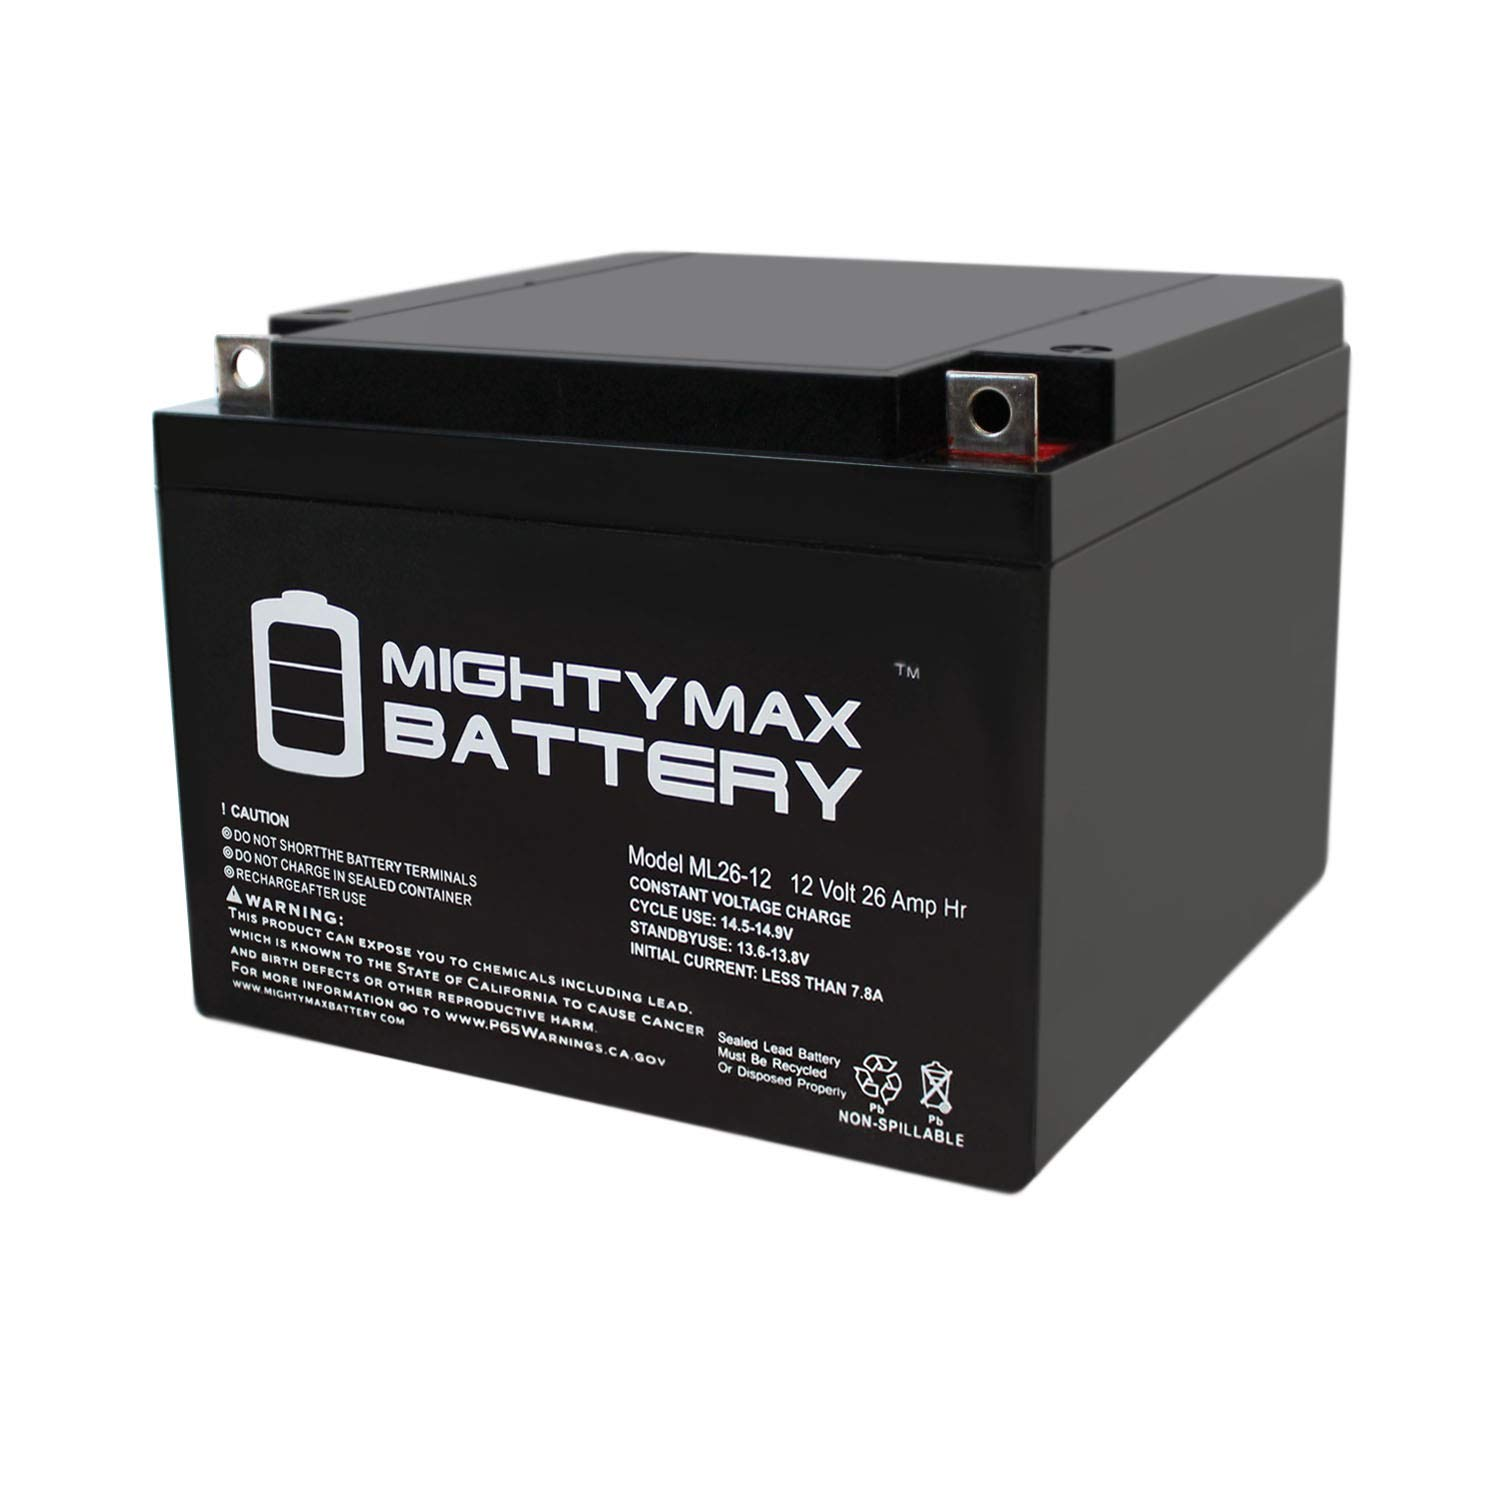 Mighty Max Battery 12V 26AH Battery Replacement for Odyssey PC925 Brand Product